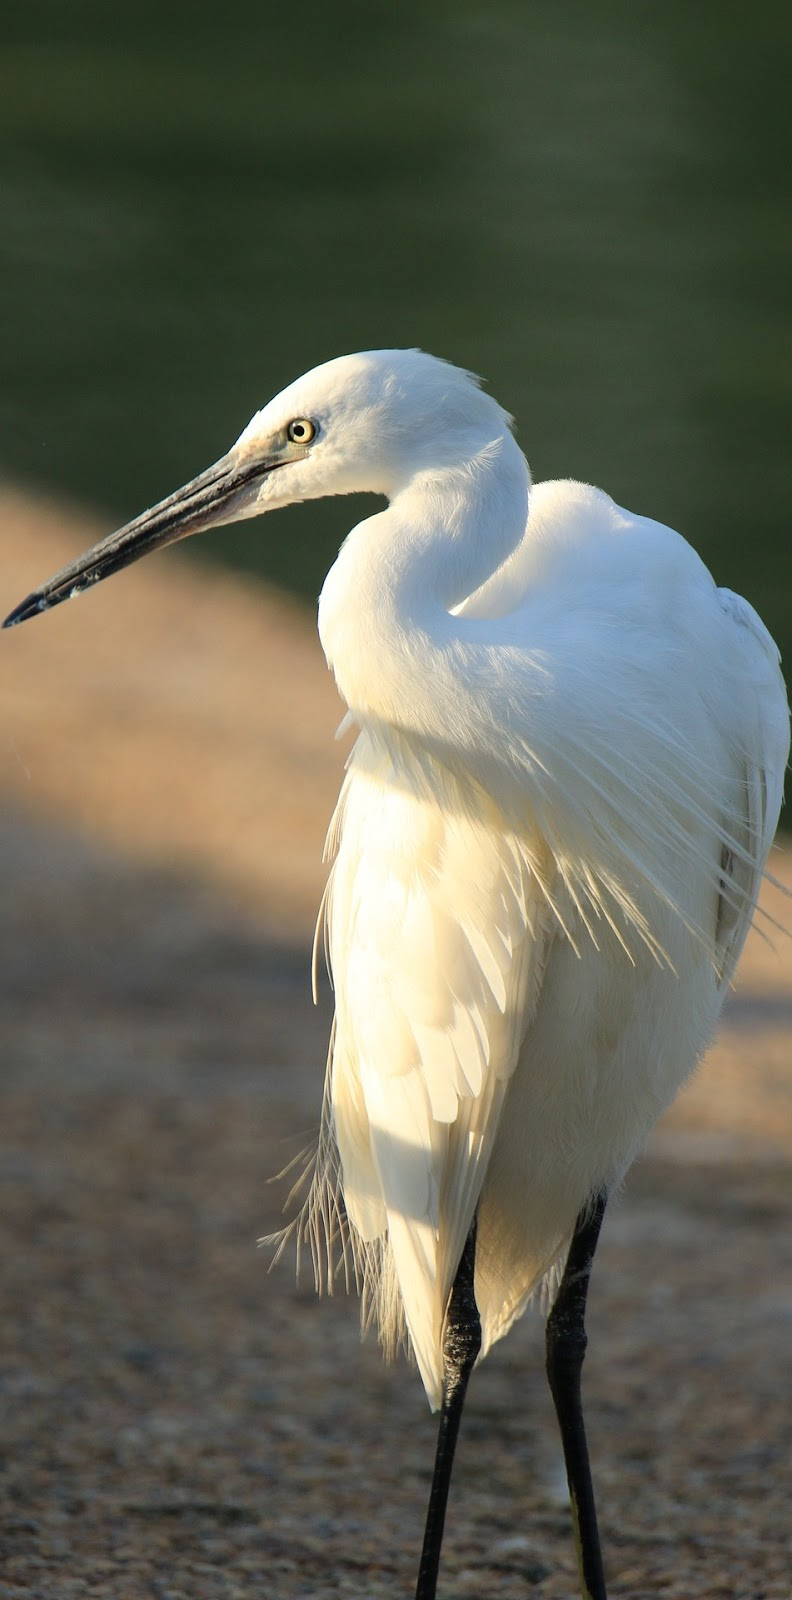 Photo of a little egret.